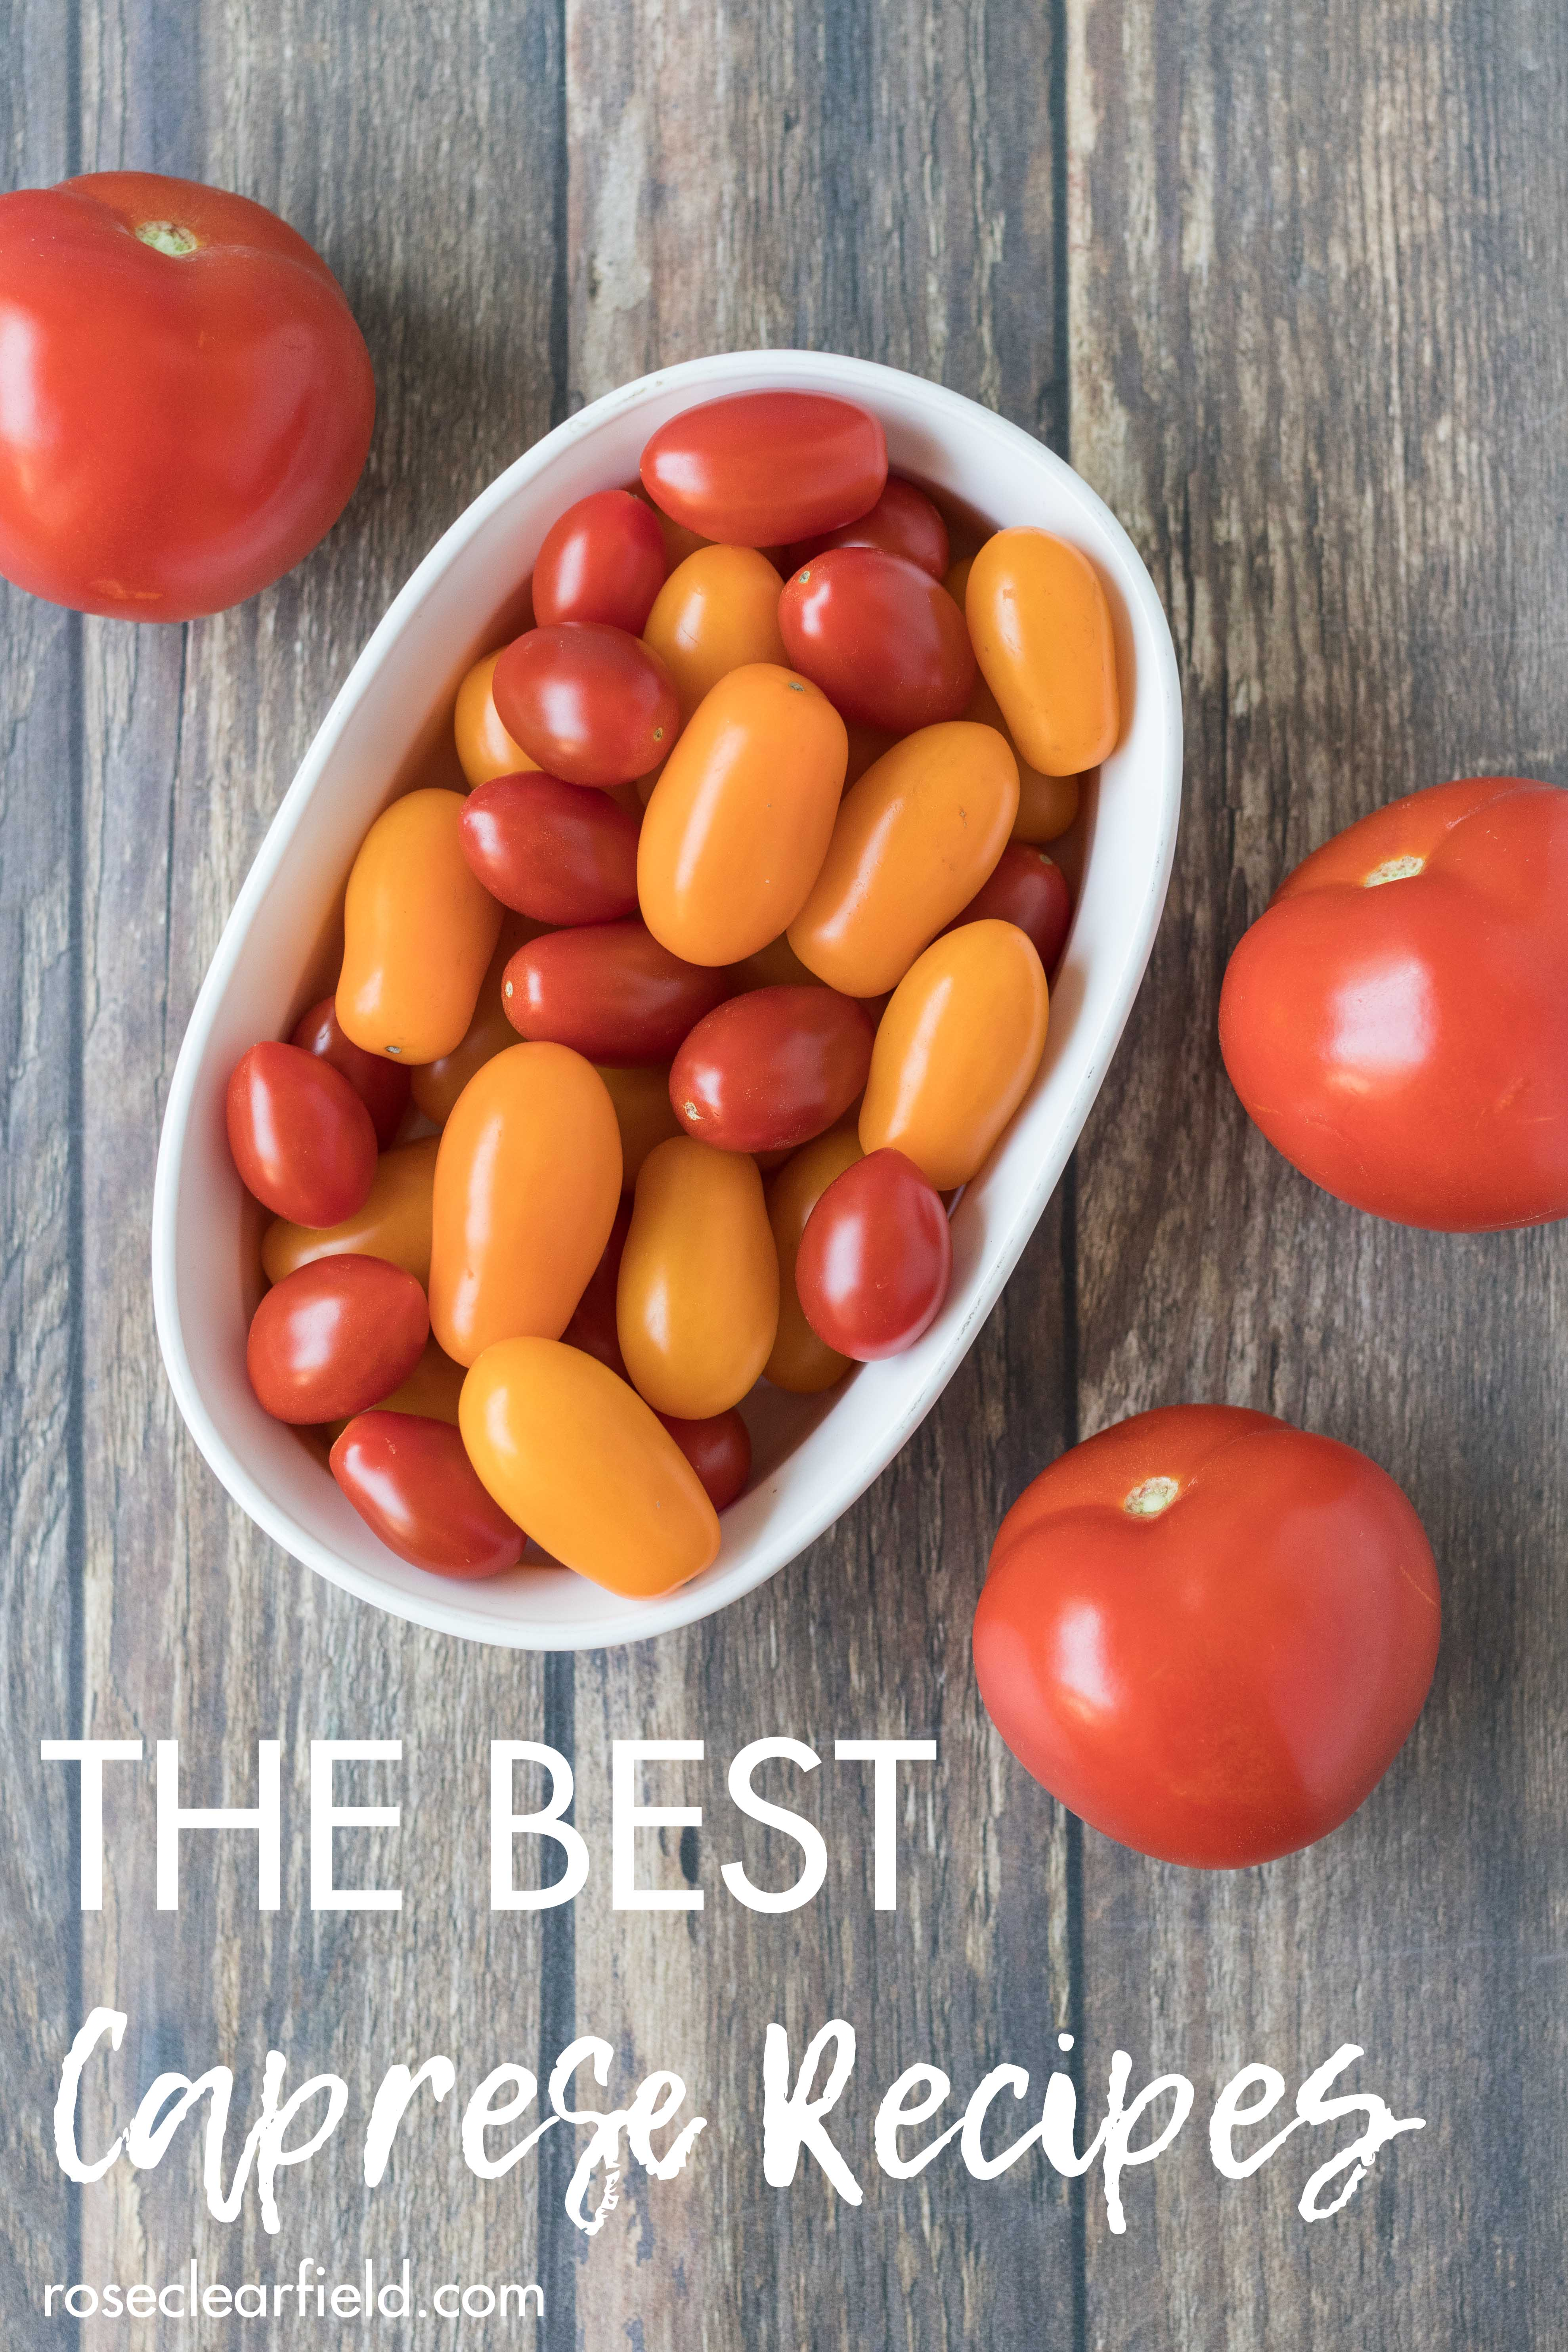 The best caprese recipes for summer lunches and dinners. Make caprese salads, appetizers, pizzas, sandwiches, pasta bakes, and more! #caprese #capreserecipes #summereating | https://www.roseclearfield.com